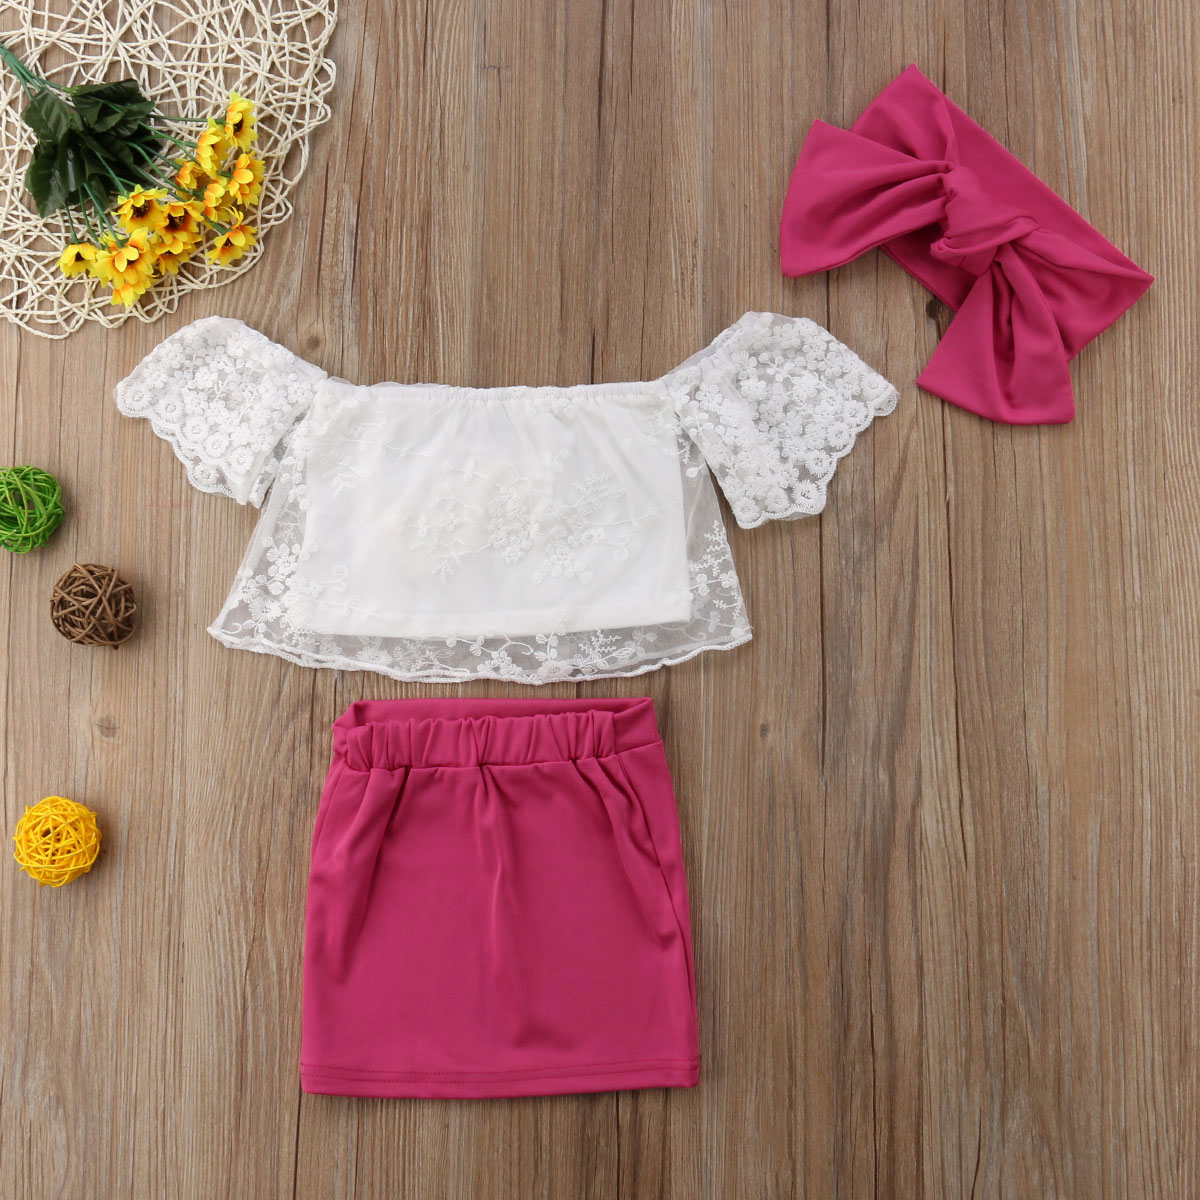 Kids Baby Girl Set Lace Floral Tops T shirt+Skirts Dress 3pcs Summer Outfits Set Clothes